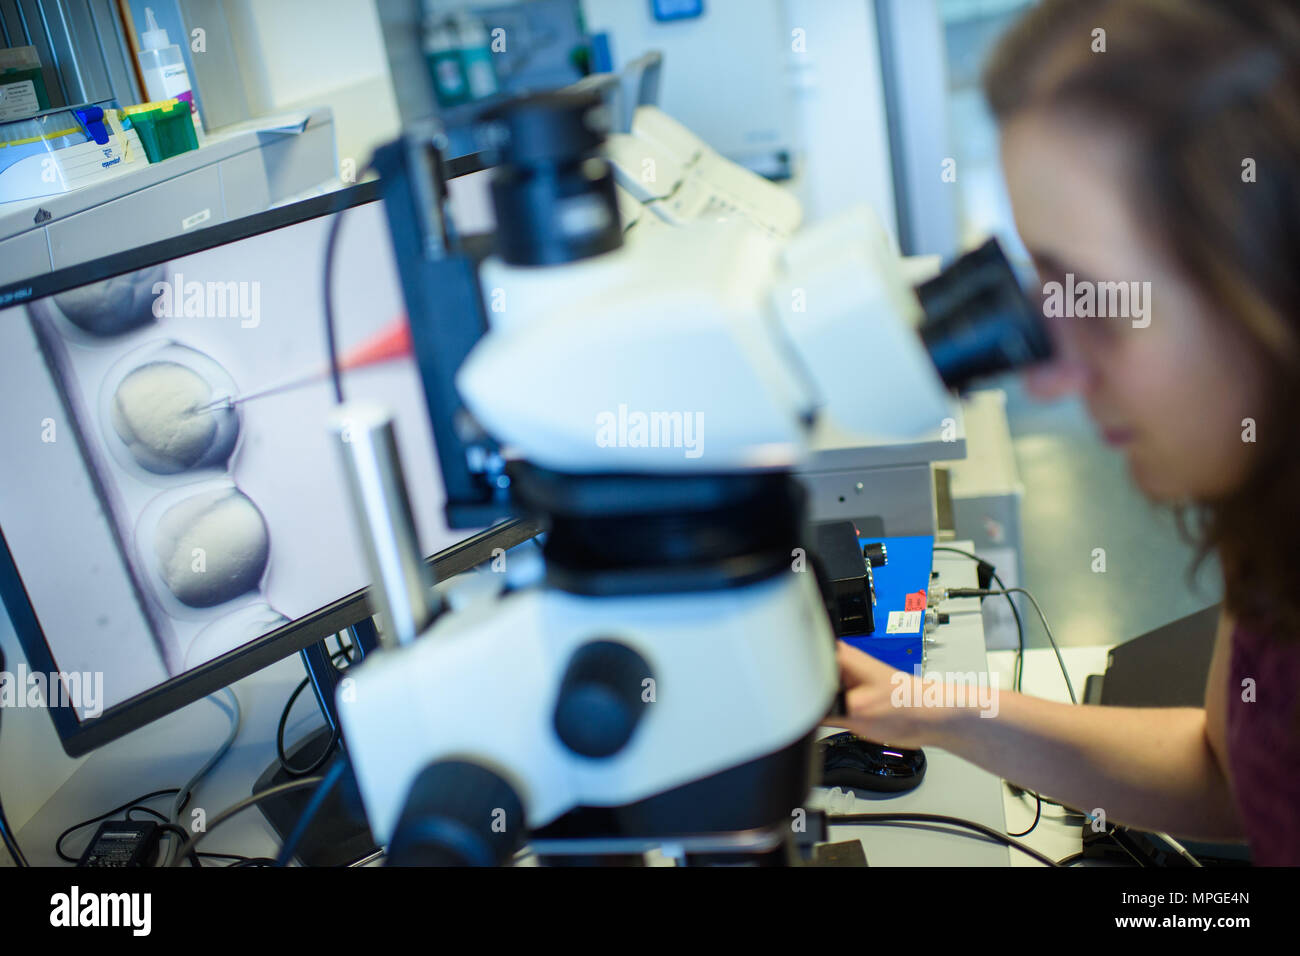 22 May 2018, Germany, Berlin: A researcher watches the CRISPR/Cas9 process through a stereomicroscope at the Max-Delbrueck-Centre for Molecular Medicine. Photo: Gregor Fischer/dpa Stock Photo